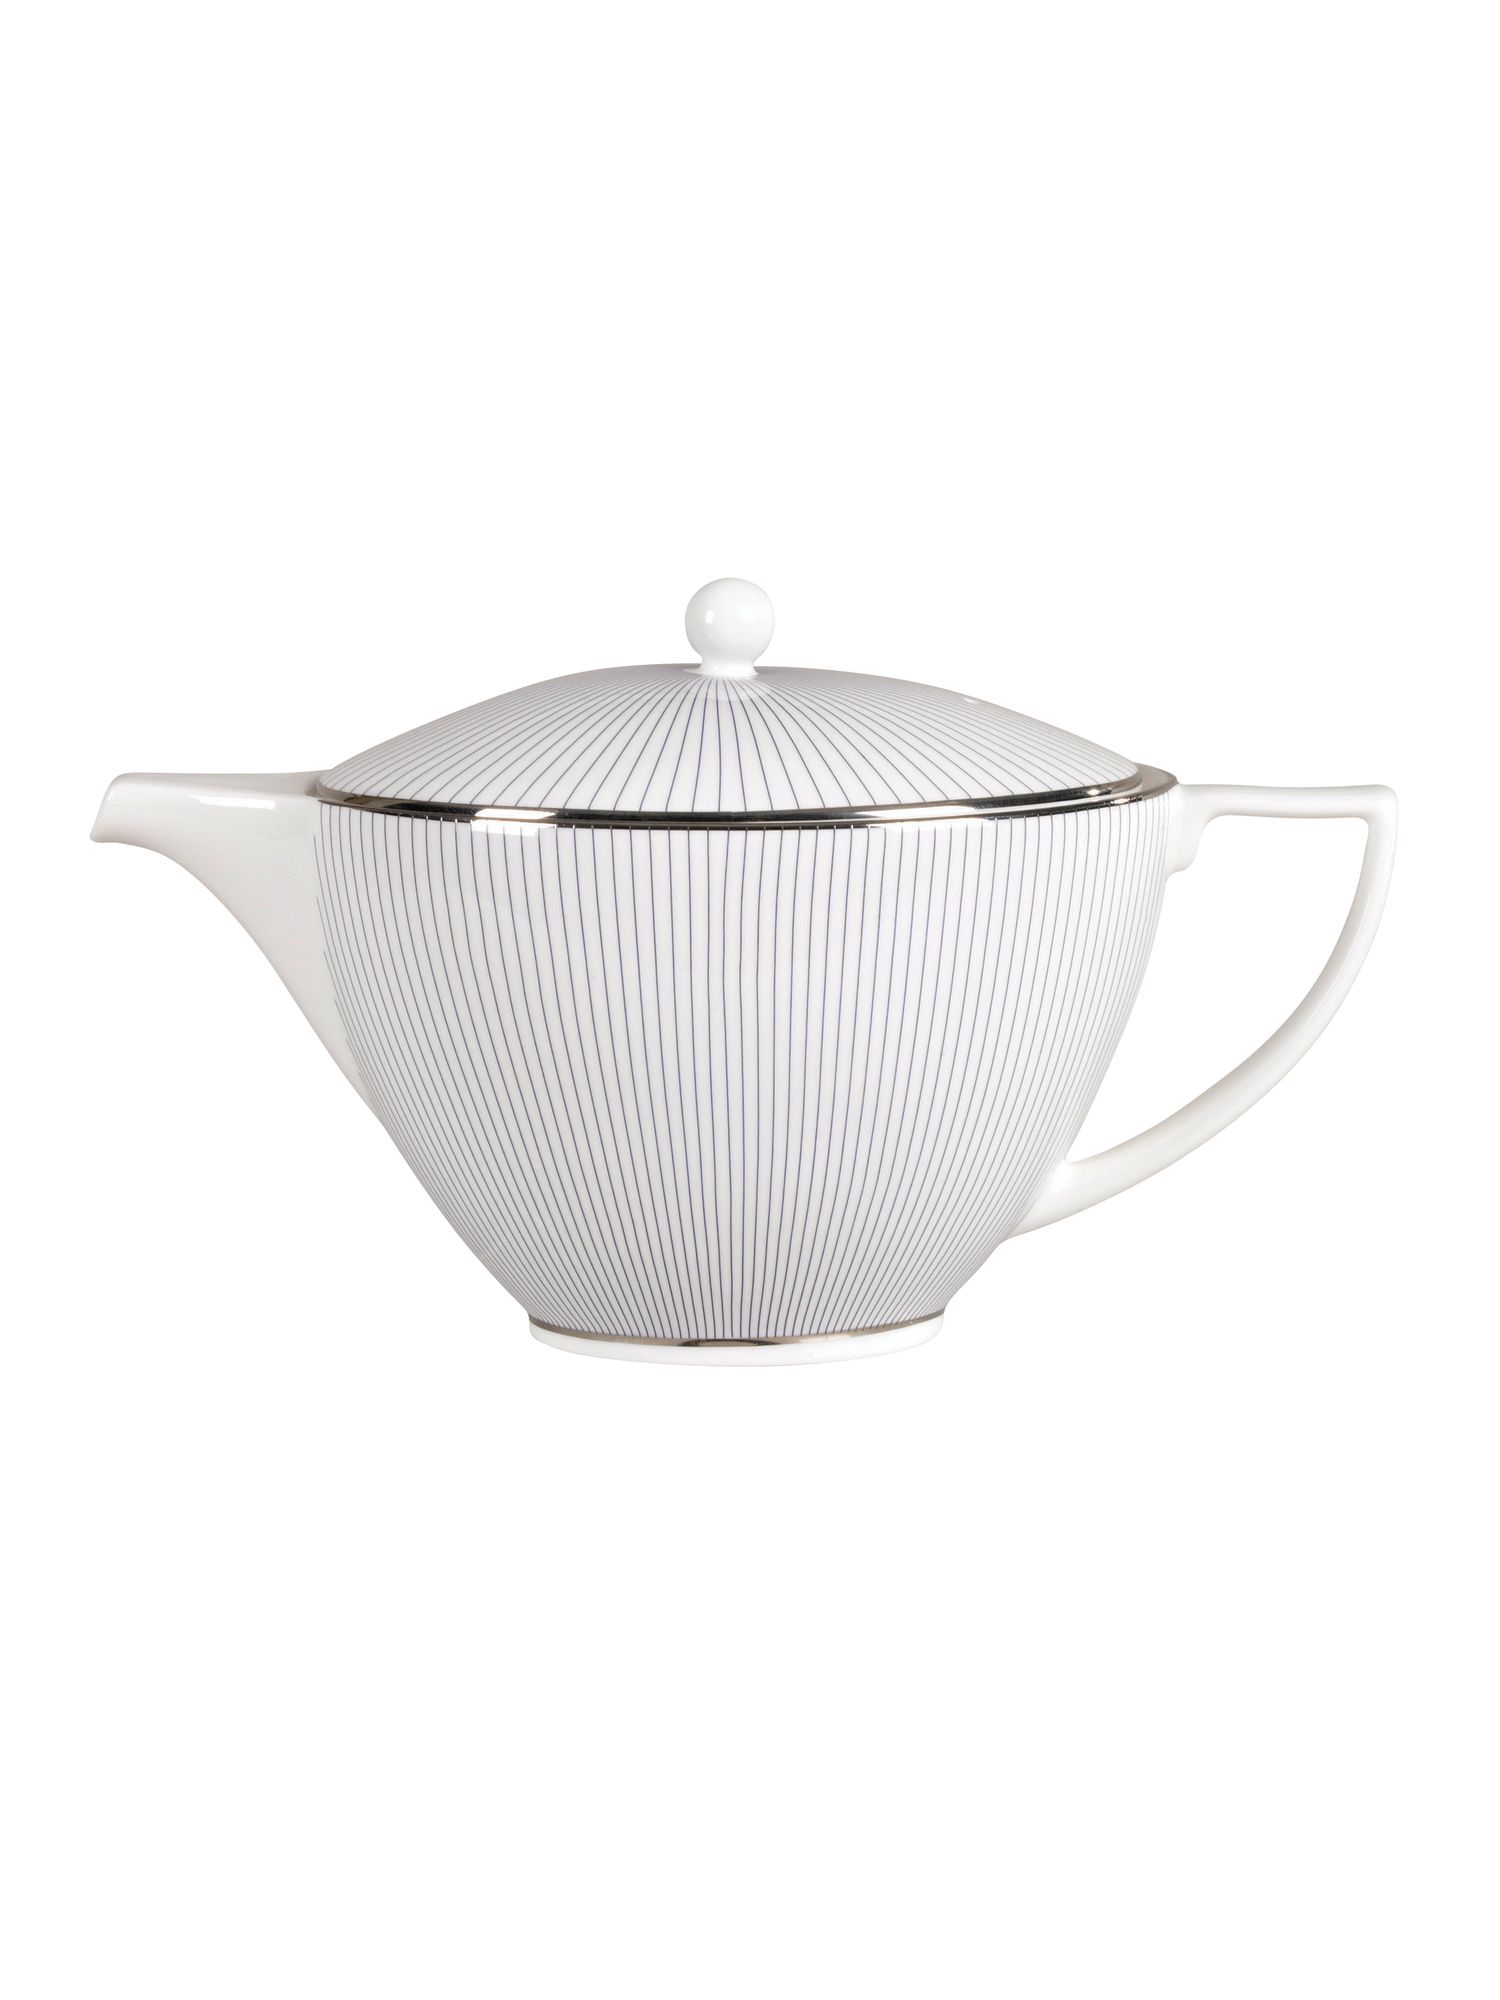 Wedgwood Pin stripe teapot.